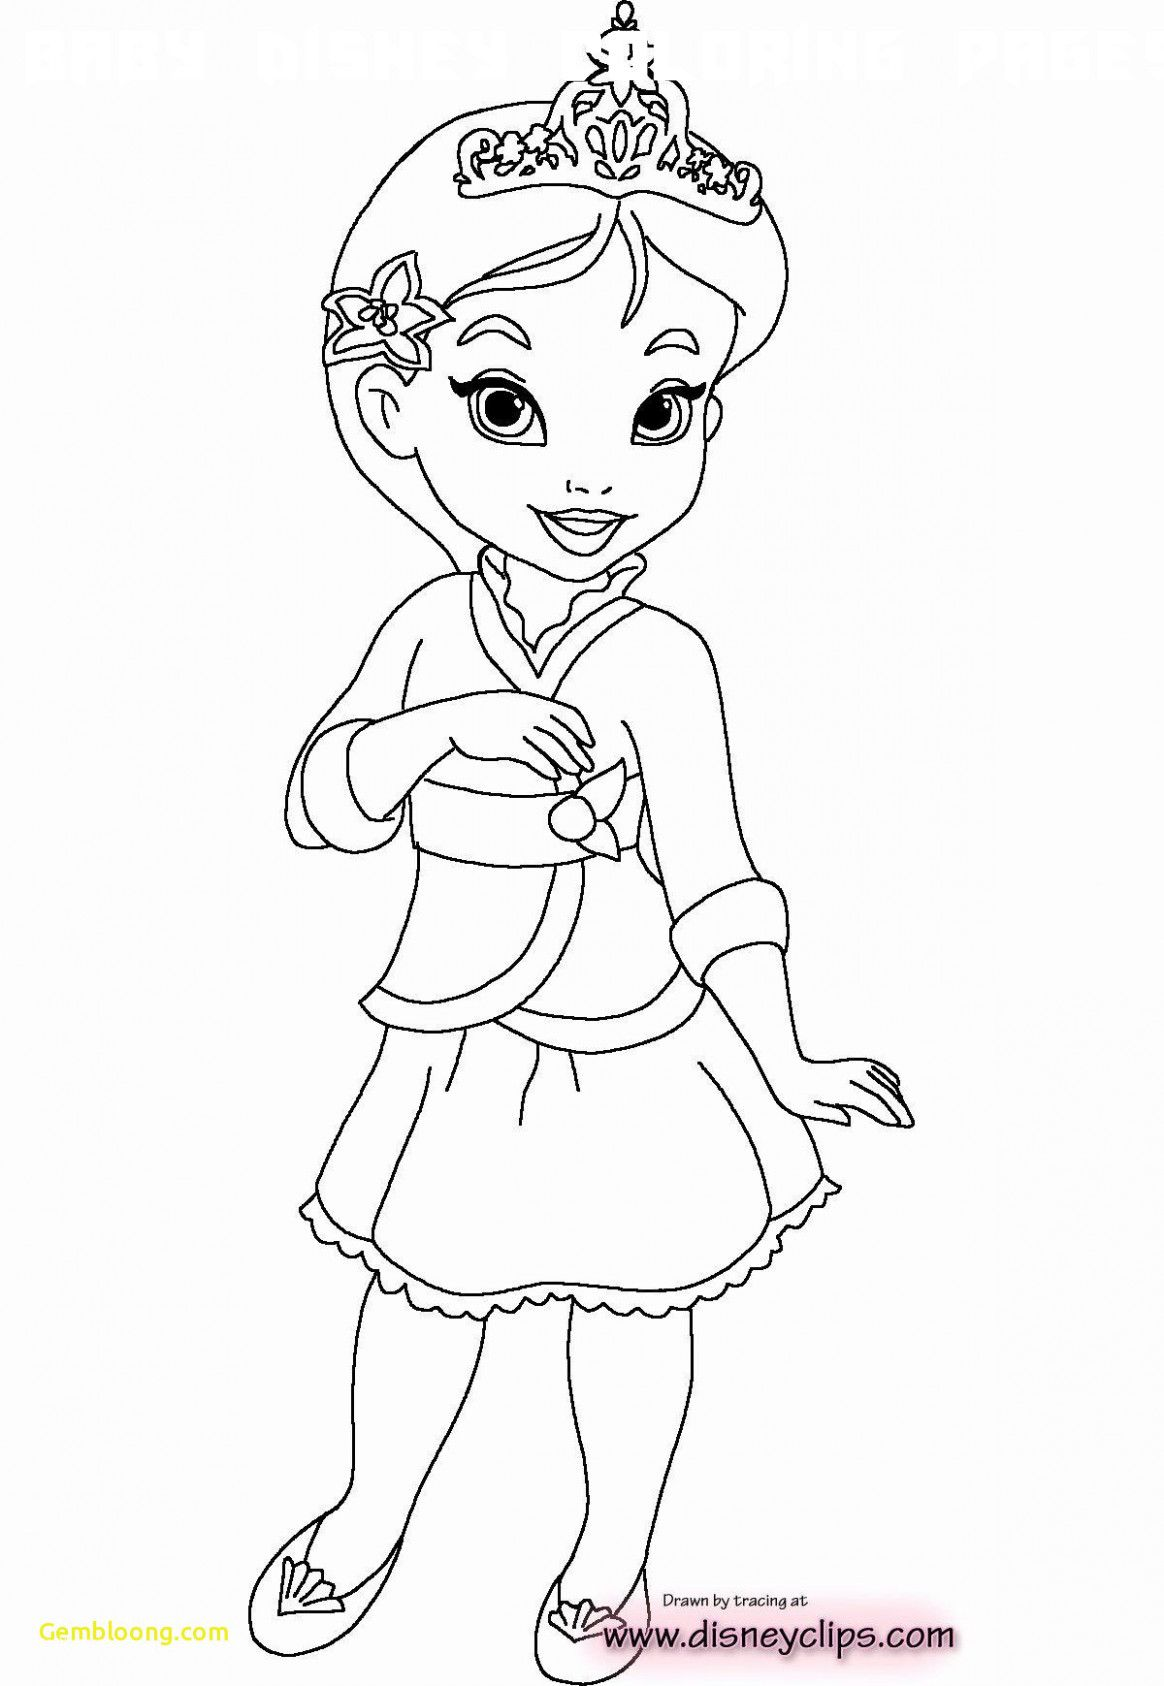 6 Baby Disney Coloring Pages In 2020 Disney Princess Coloring Pages Princess Coloring Pages Princess Coloring